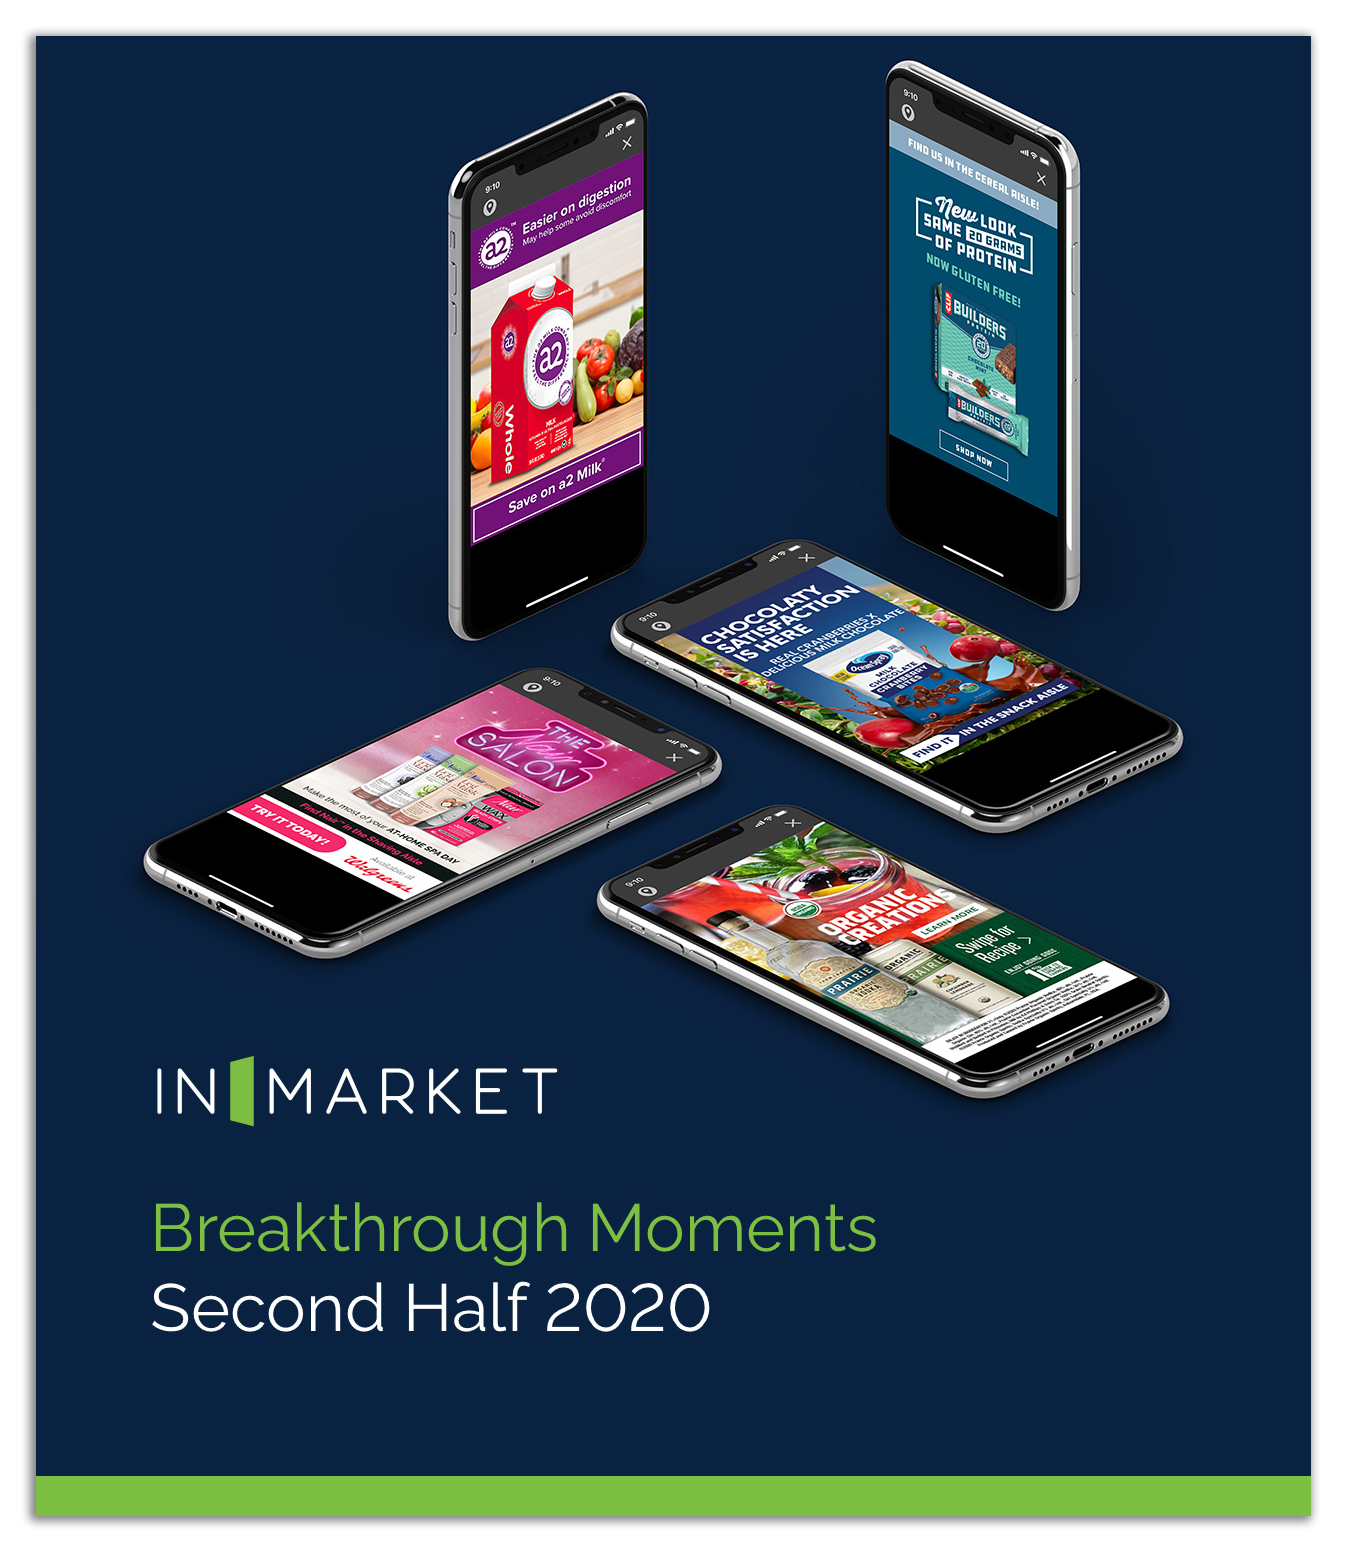 Breakthrough Moments H2 2020 Cover Photo-shadowed